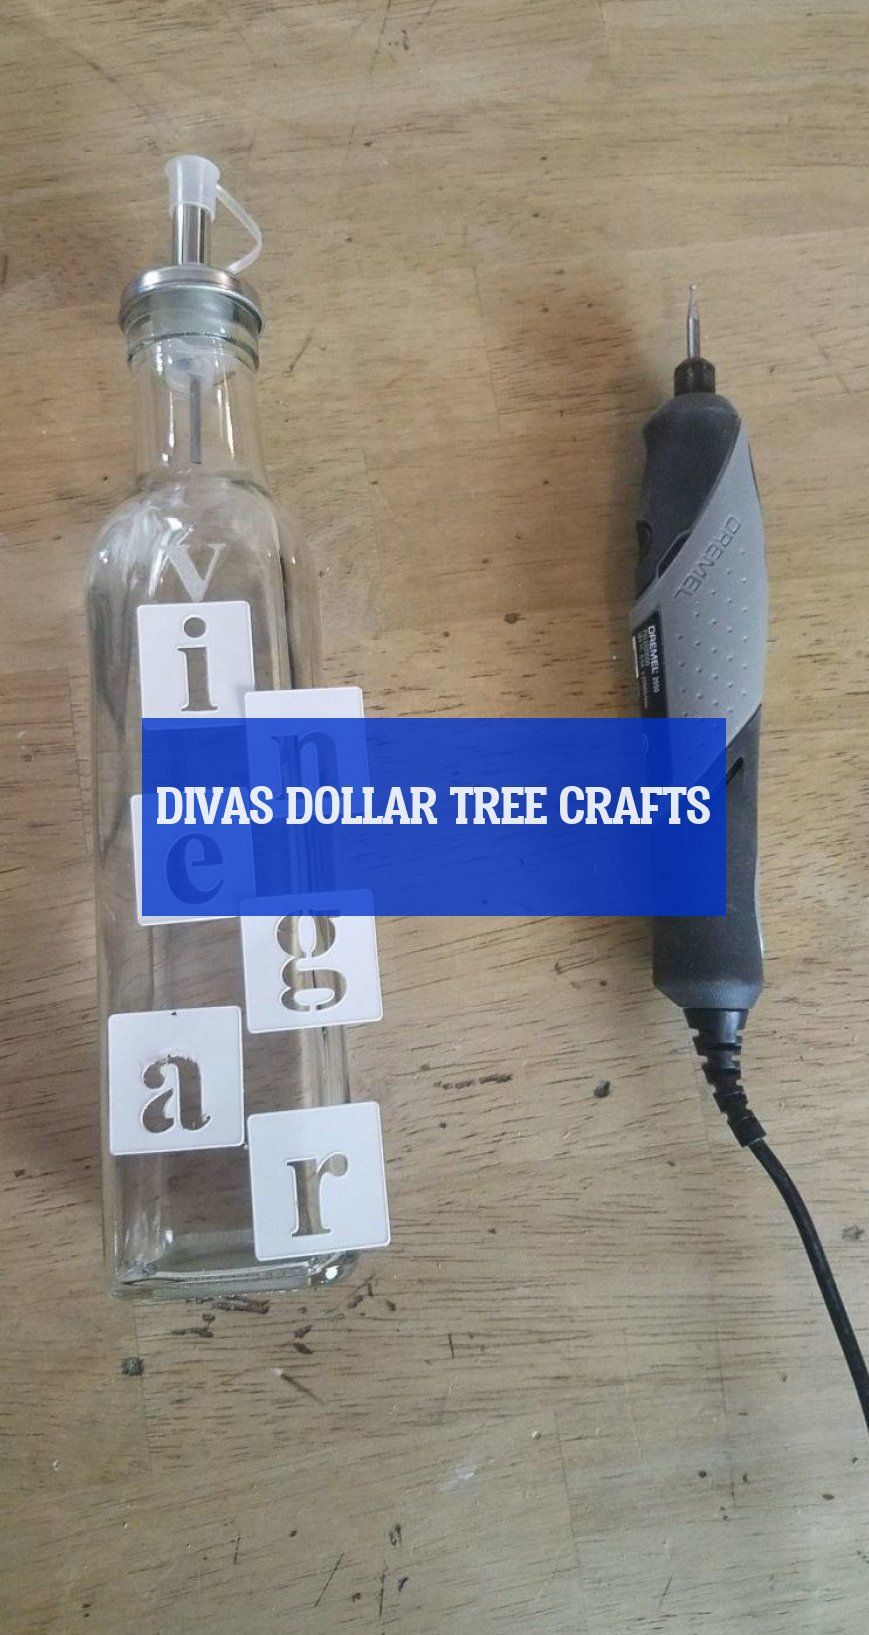 Divas dollar tree crafts